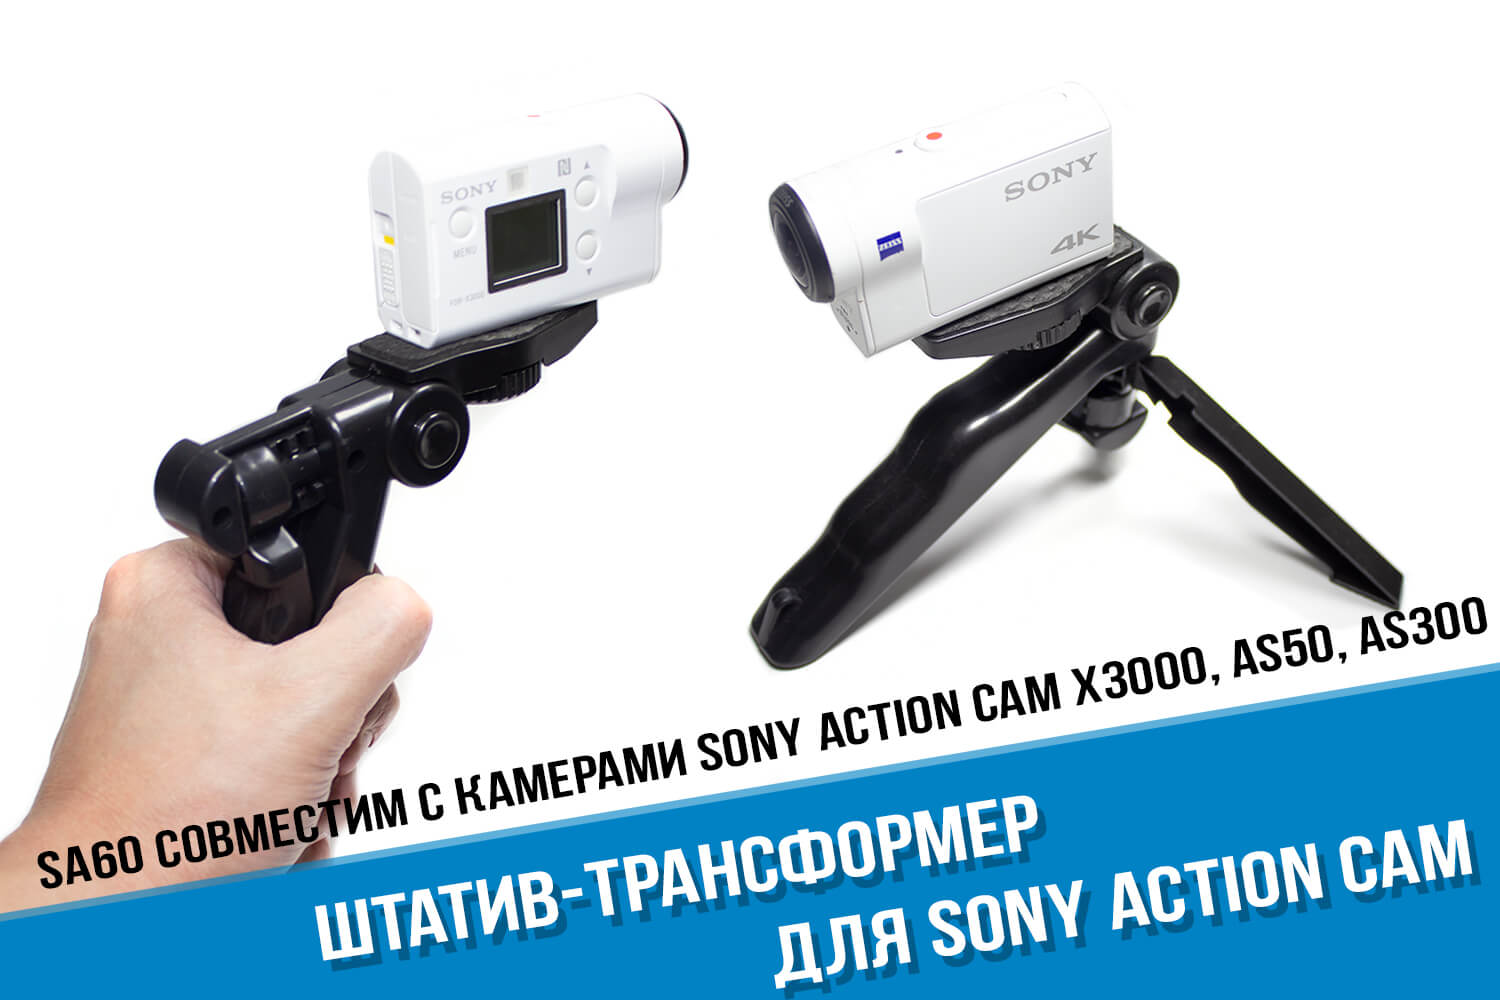 Трансформер-штатив для Sony Action Cam